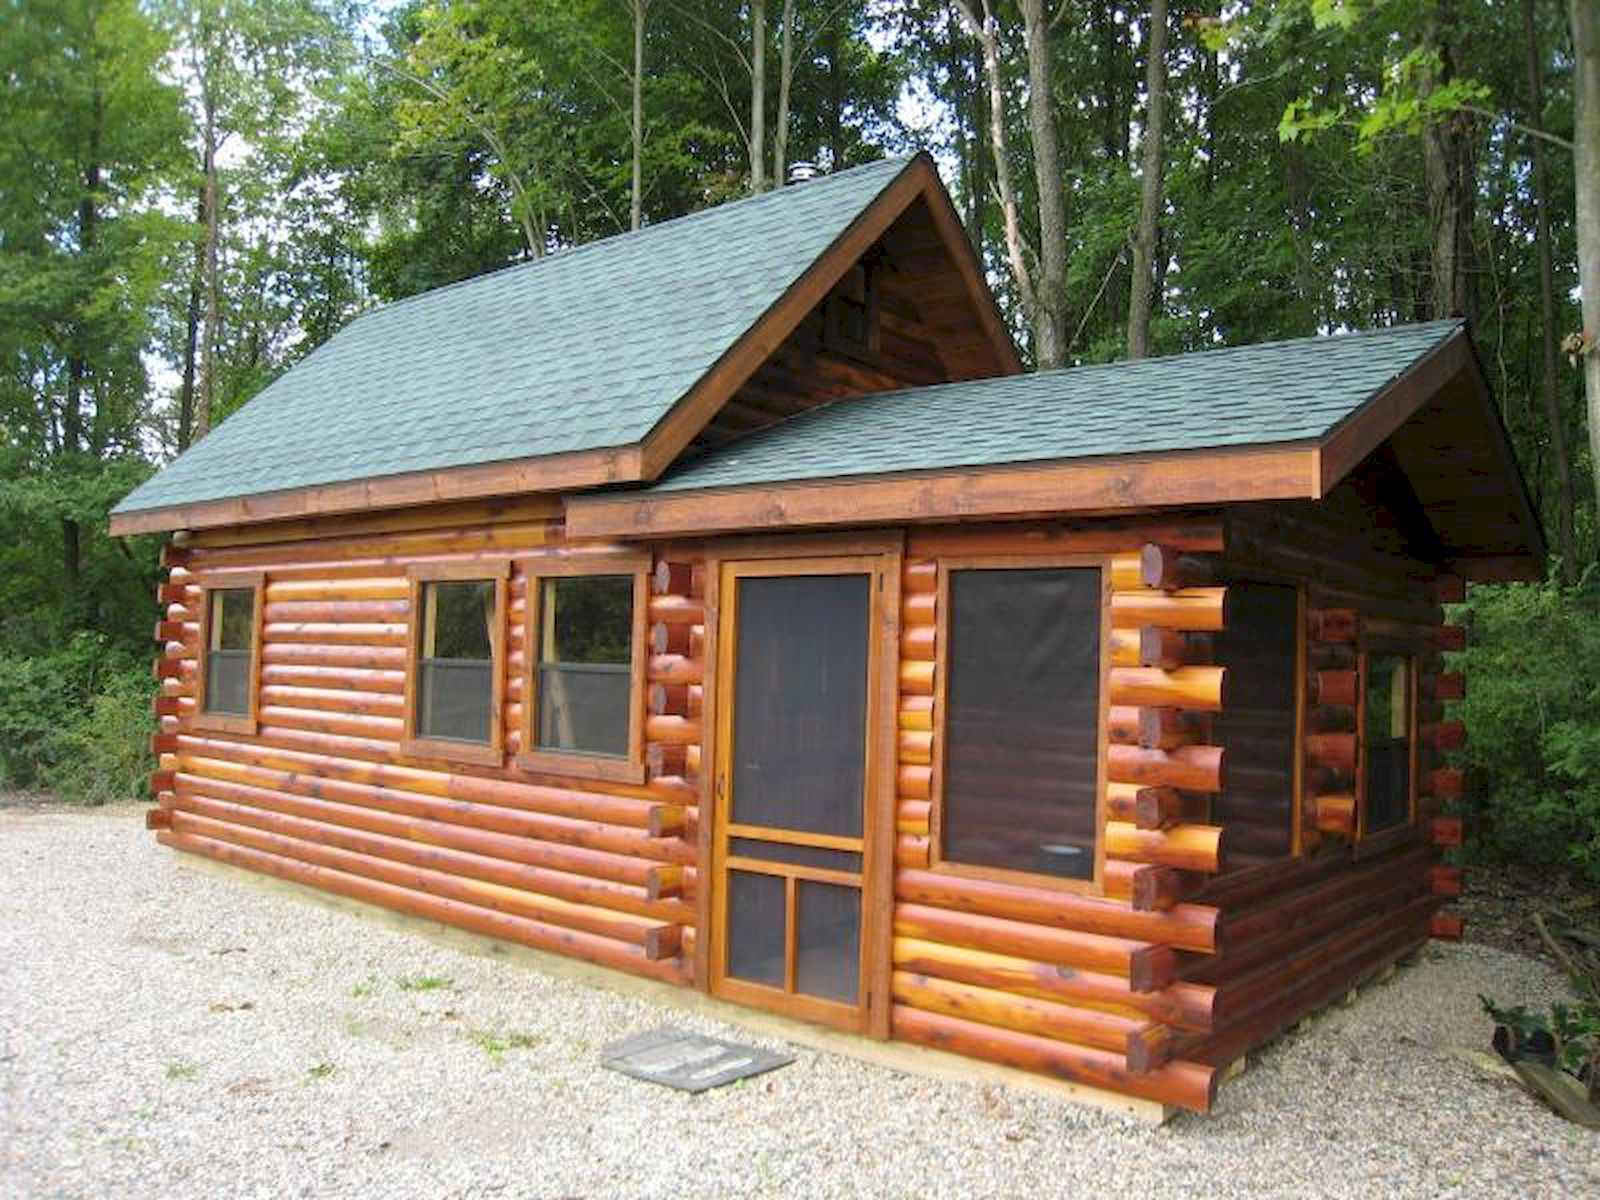 60 Rustic Log Cabin Homes Plans Design Ideas And Remodel (15)